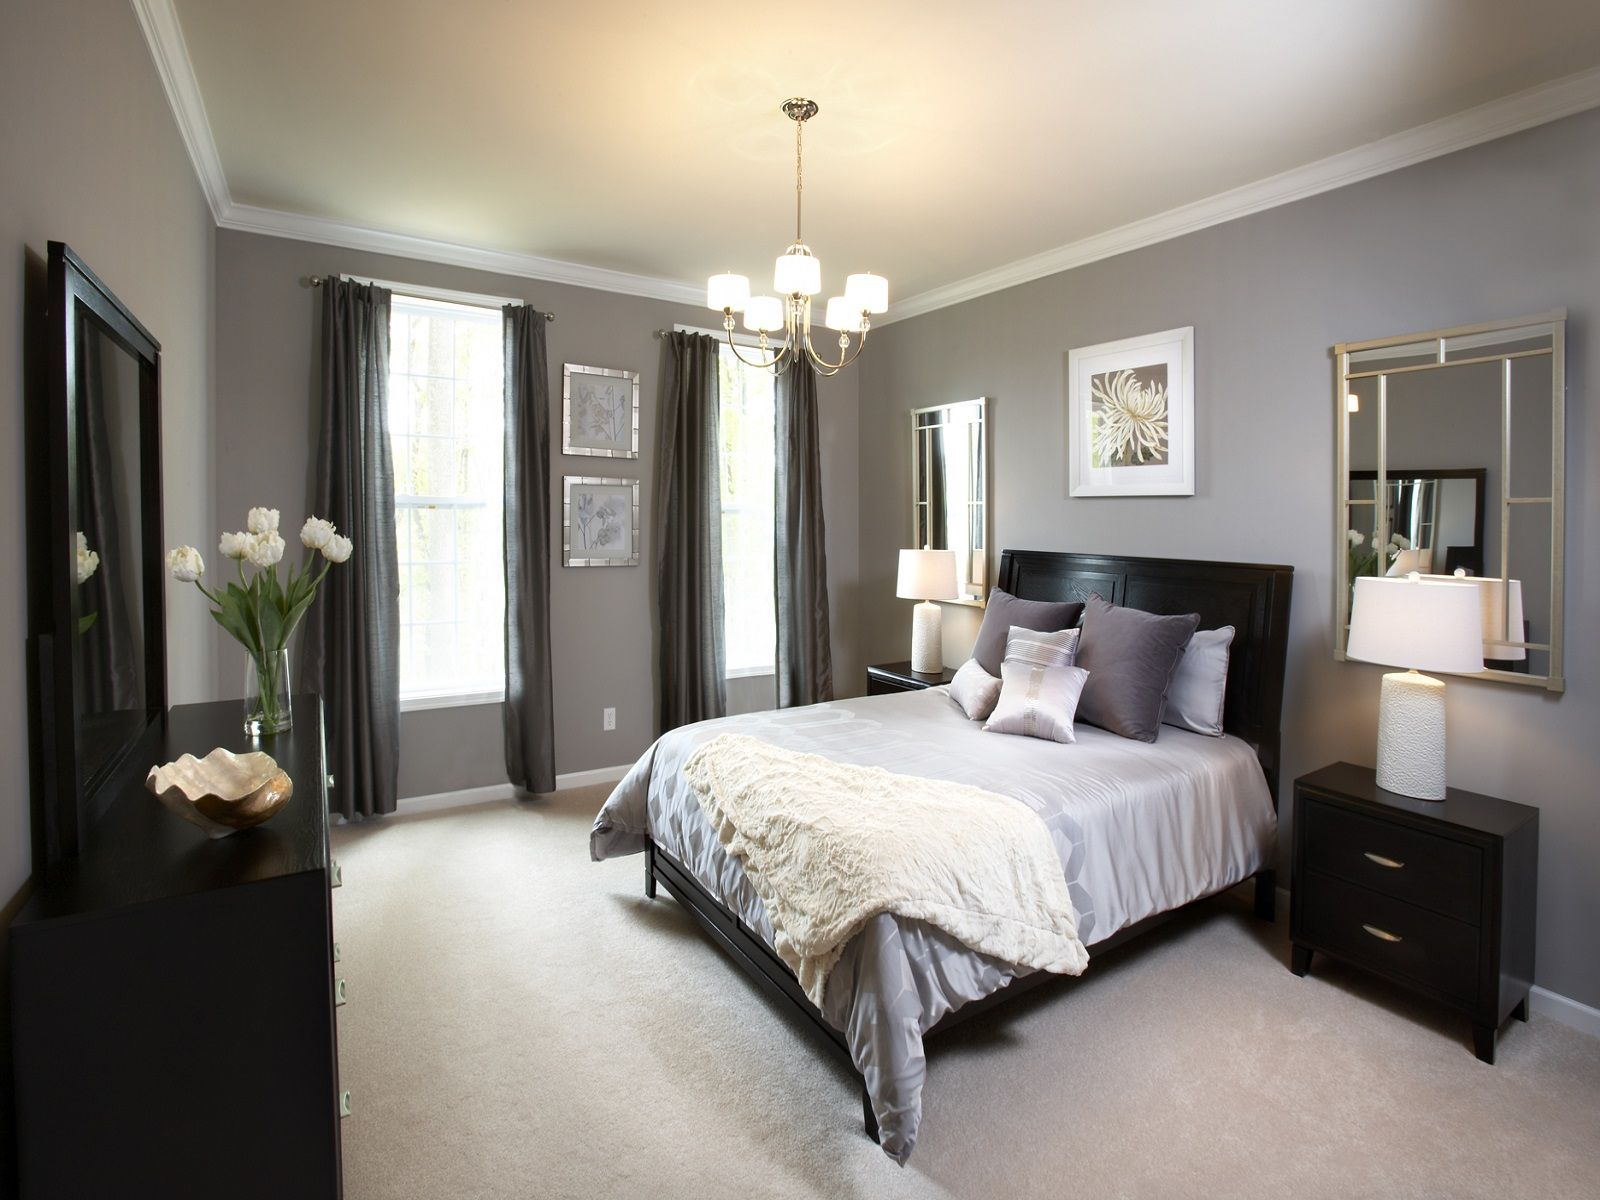 BedroomPaint Color Ideas For Master Bedroom Buffet With Mirror